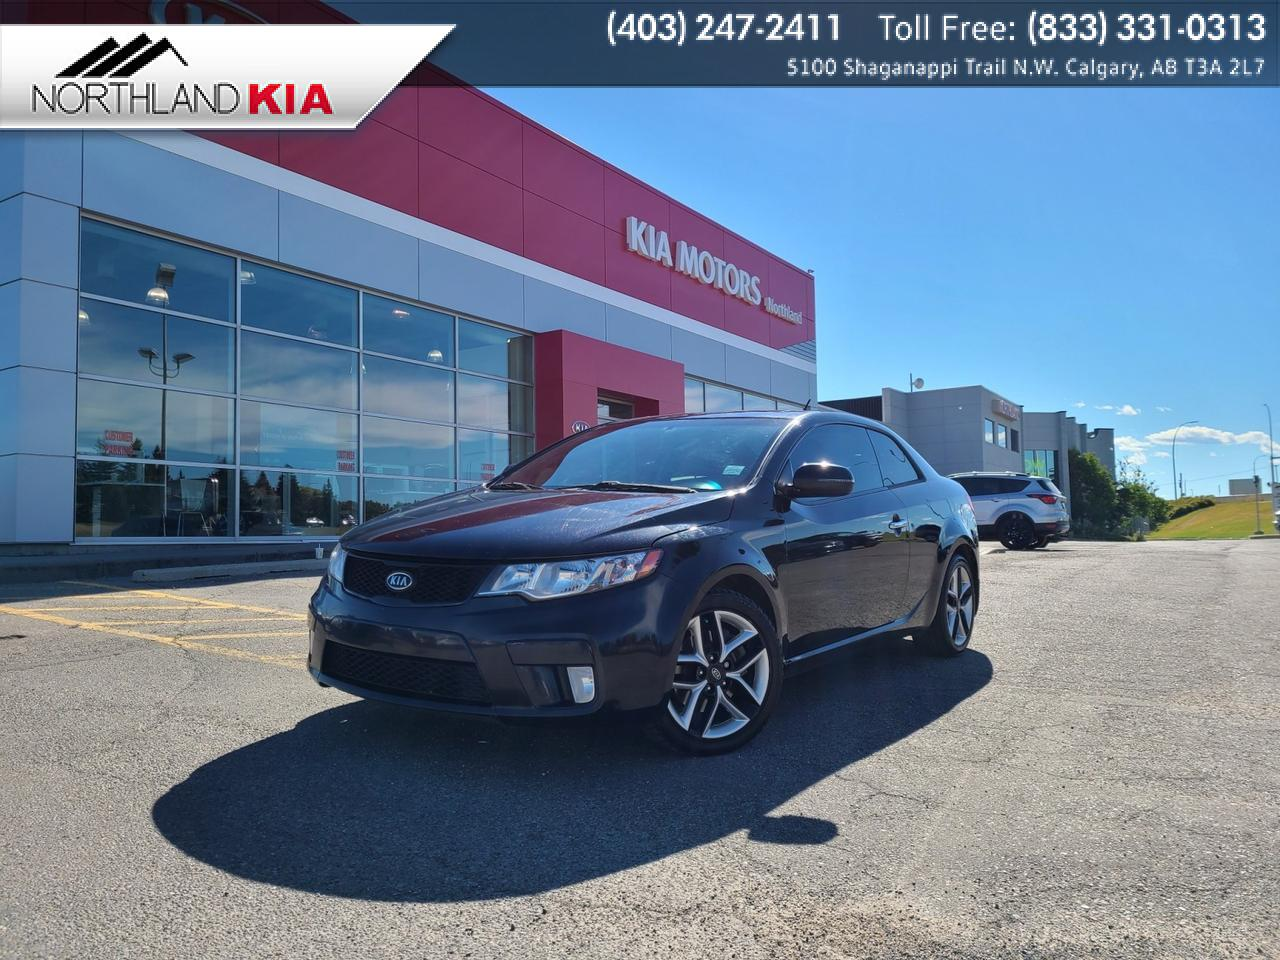 2012 Kia Forte Koup SX 6-SPEED MANUAL, HEATED SEATS, SUNROOF Calgary AB